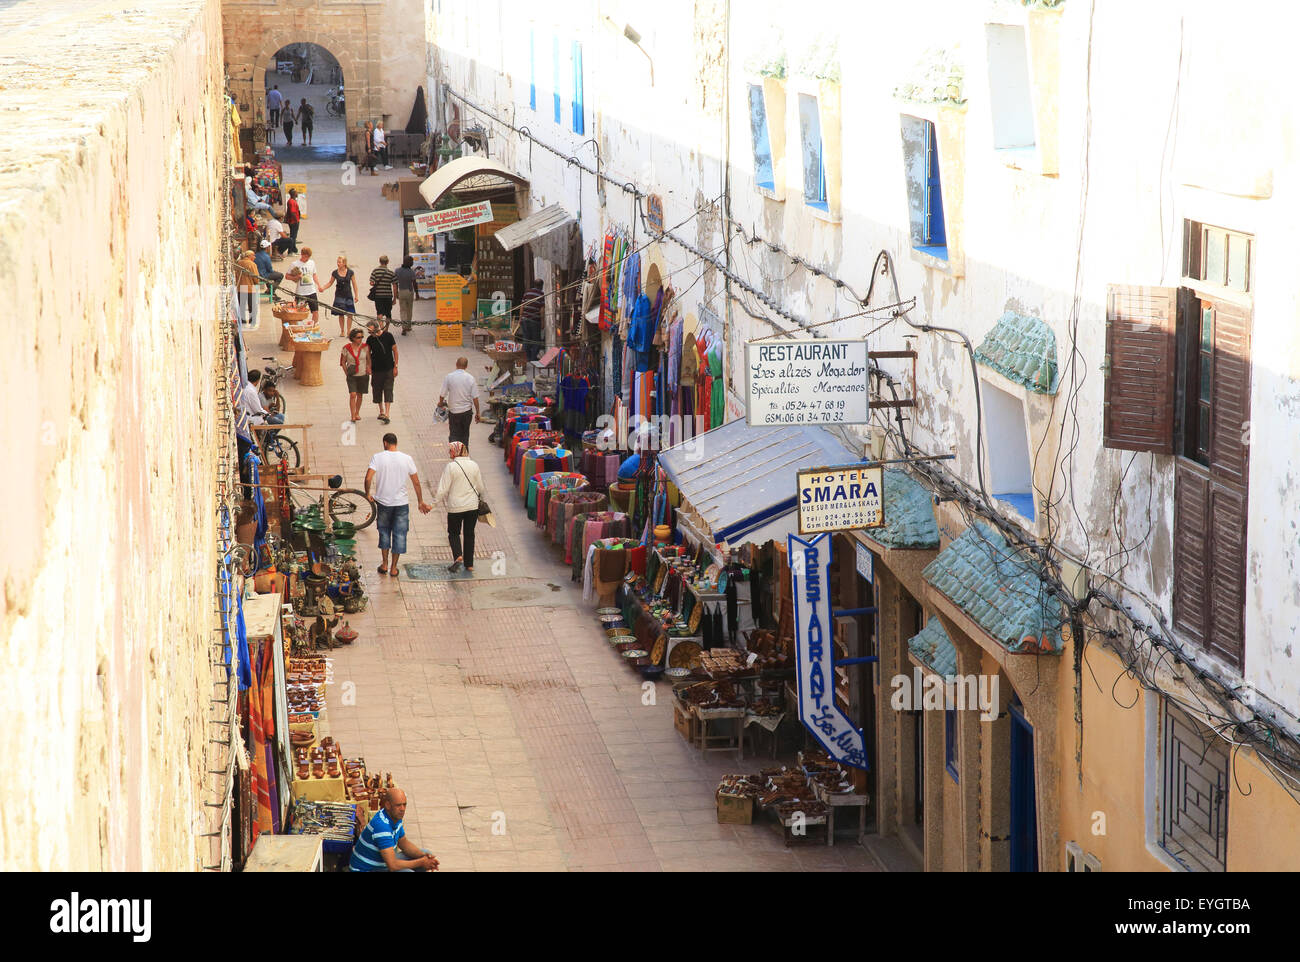 Shopping street along the inner fortified wall of the medina, Essaouira, Morocco, North Africa - Stock Image